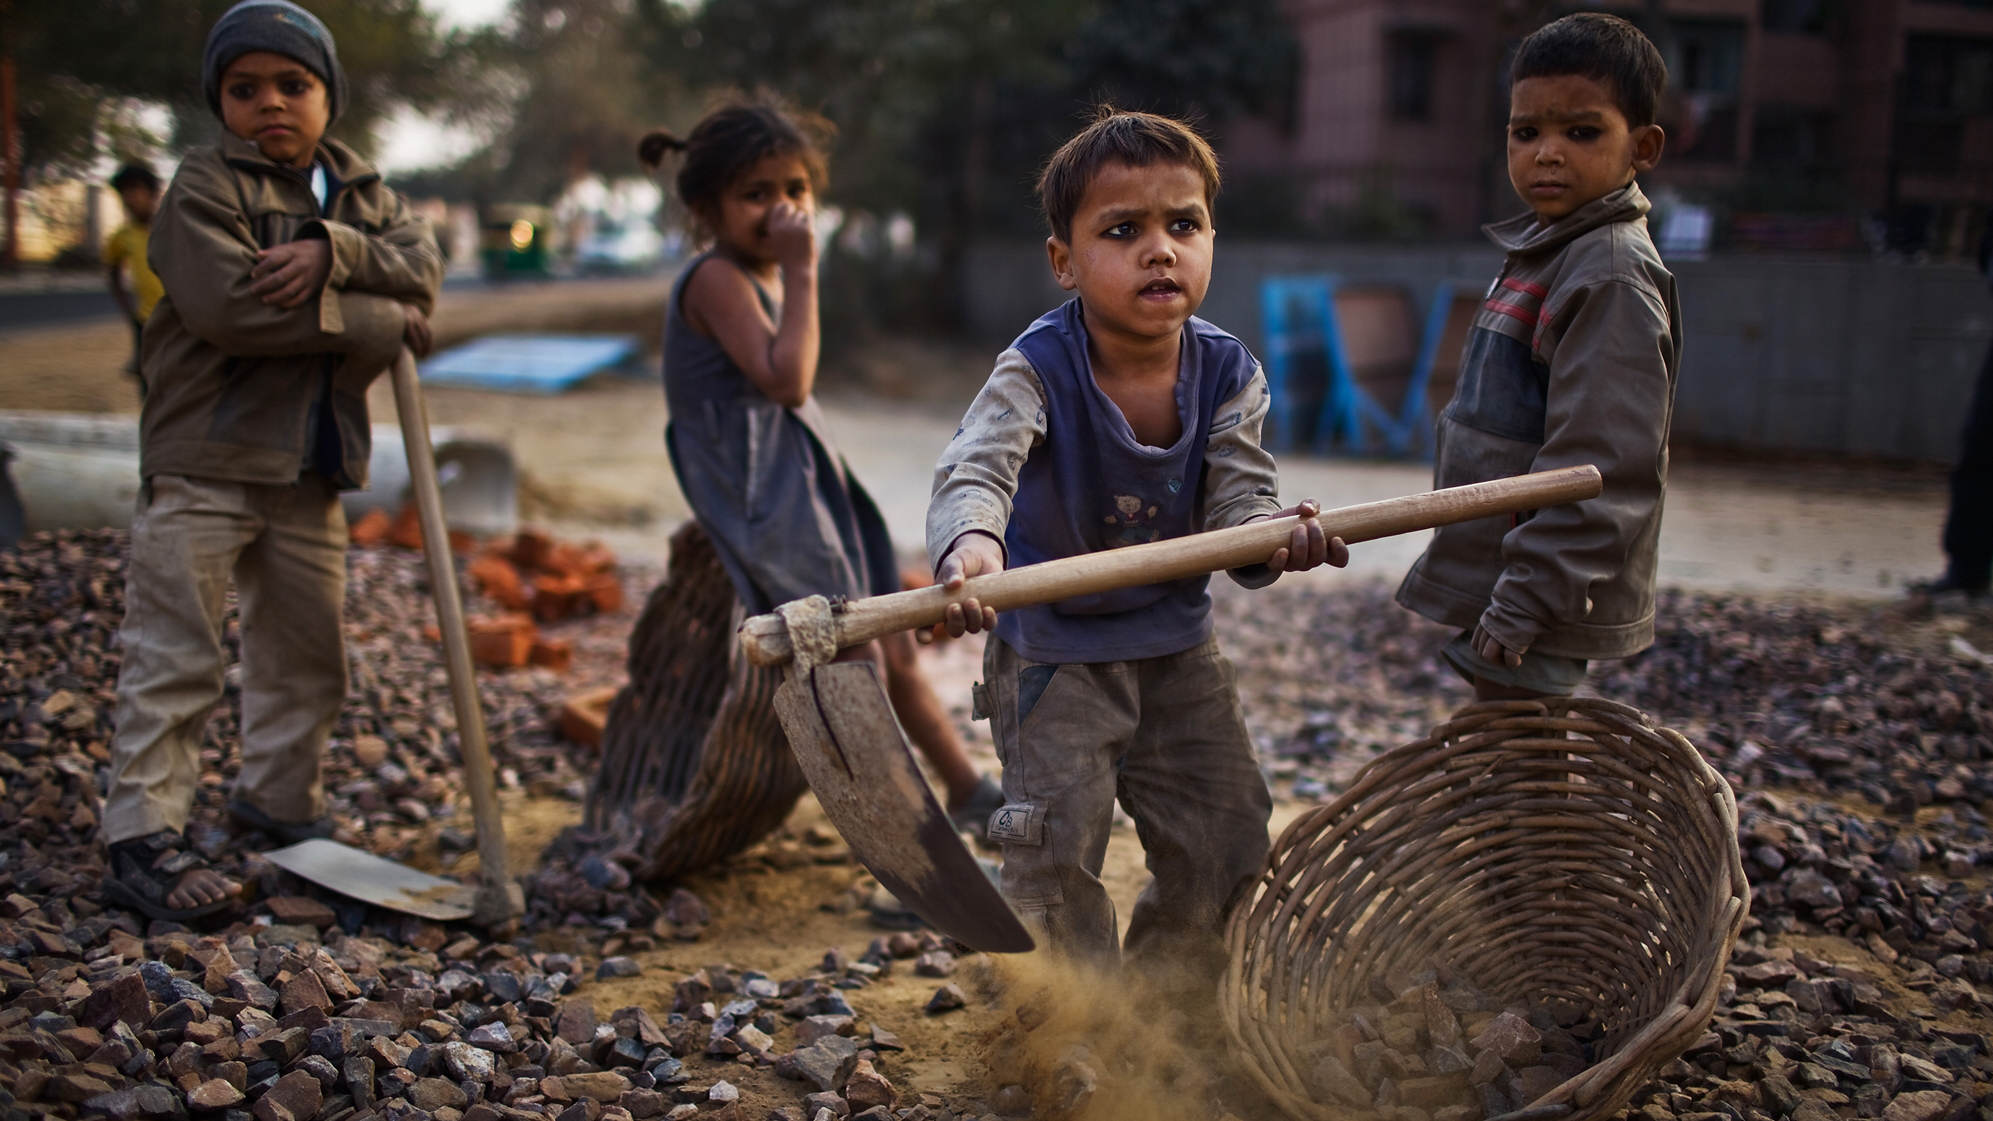 child labor thesis paper May be helpful for reduction of child labour and eventually may eliminate this problem under the prevailing socio-economic conditions of the country this research will be helpful as a useful reference in efforts to find out effective counterfactuals for eradication of wfcl in pakistan 12 statement of the.